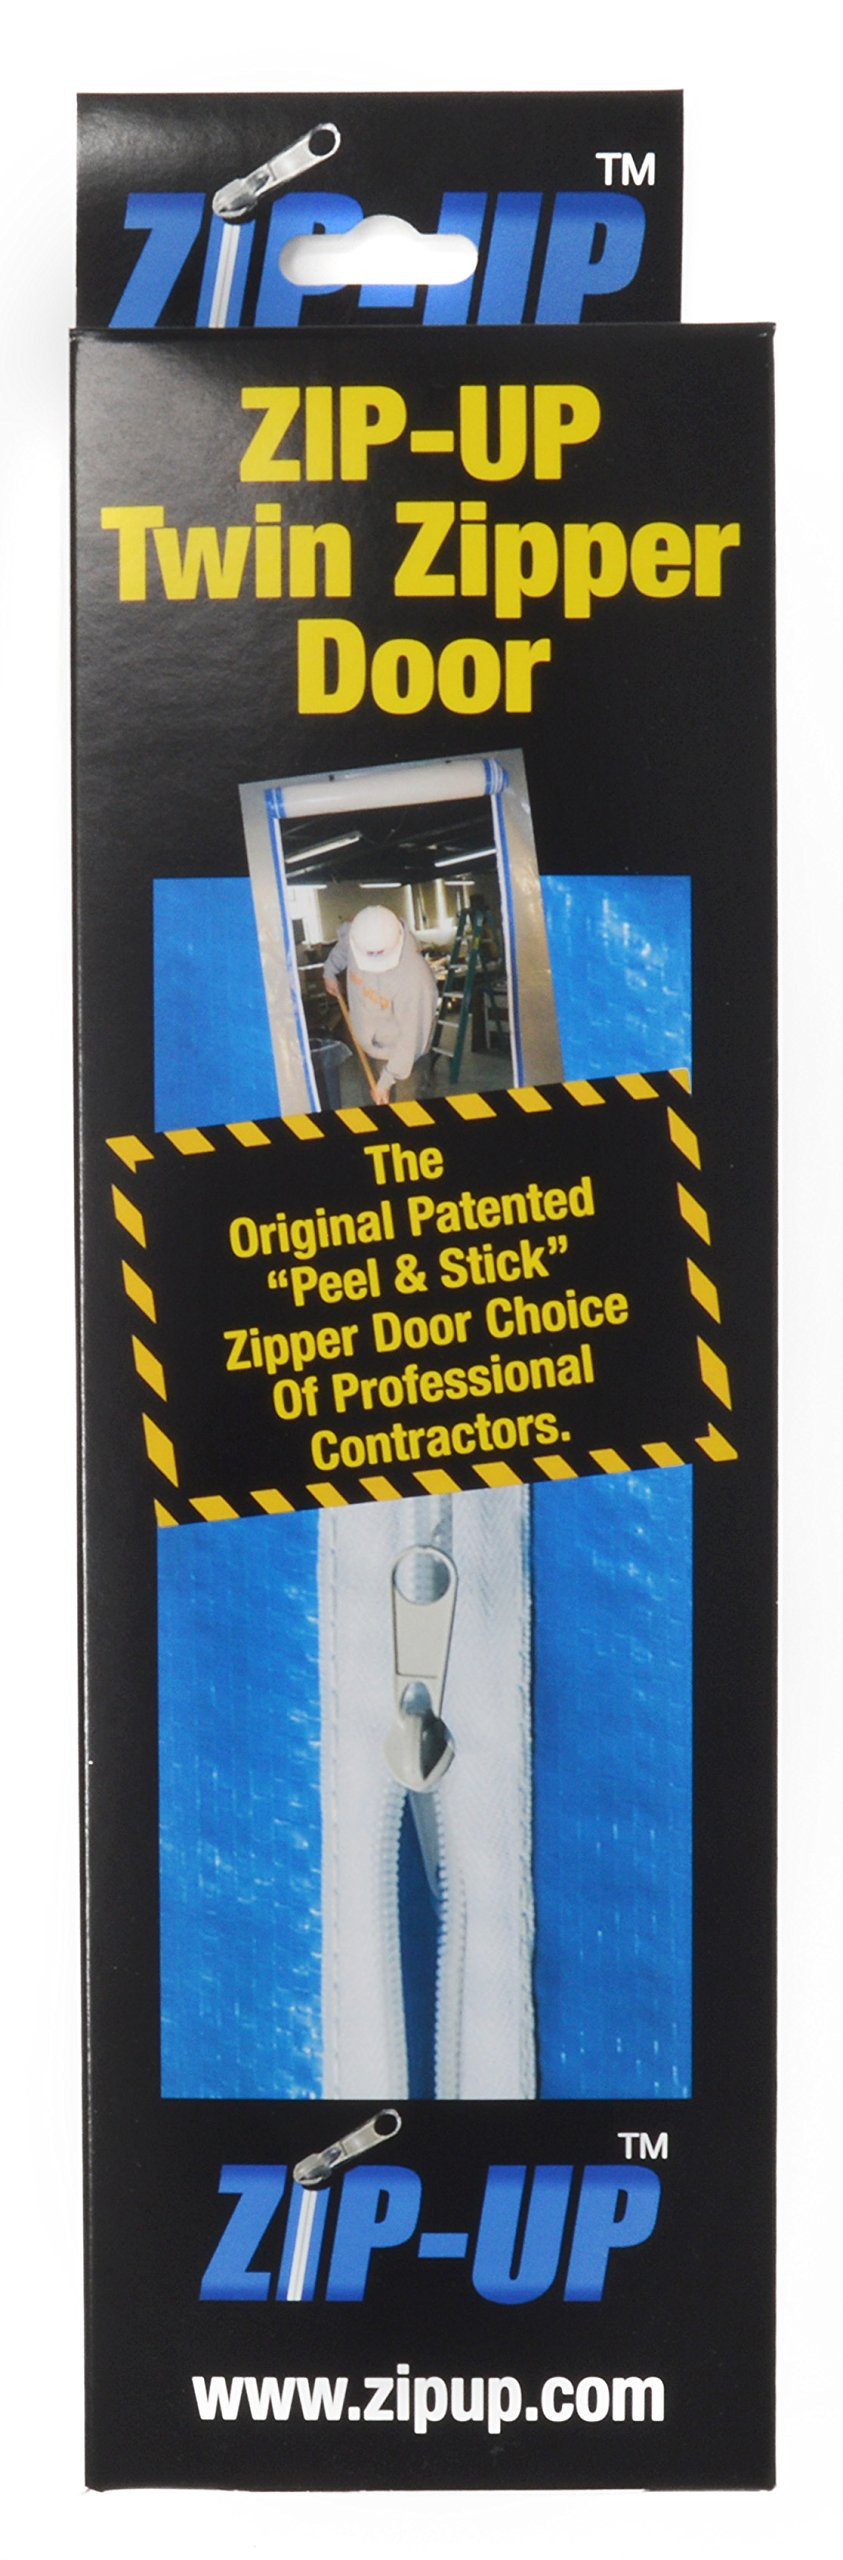 Zip-Up Products Air-Tight Twin Zipper Door - 84'' x 3'' 2 Pack For Jobsite Dust Containment with Patented Airtight Zipper & Peel & Stick Backing - ZIP7.3TWB by Zip-Up Products